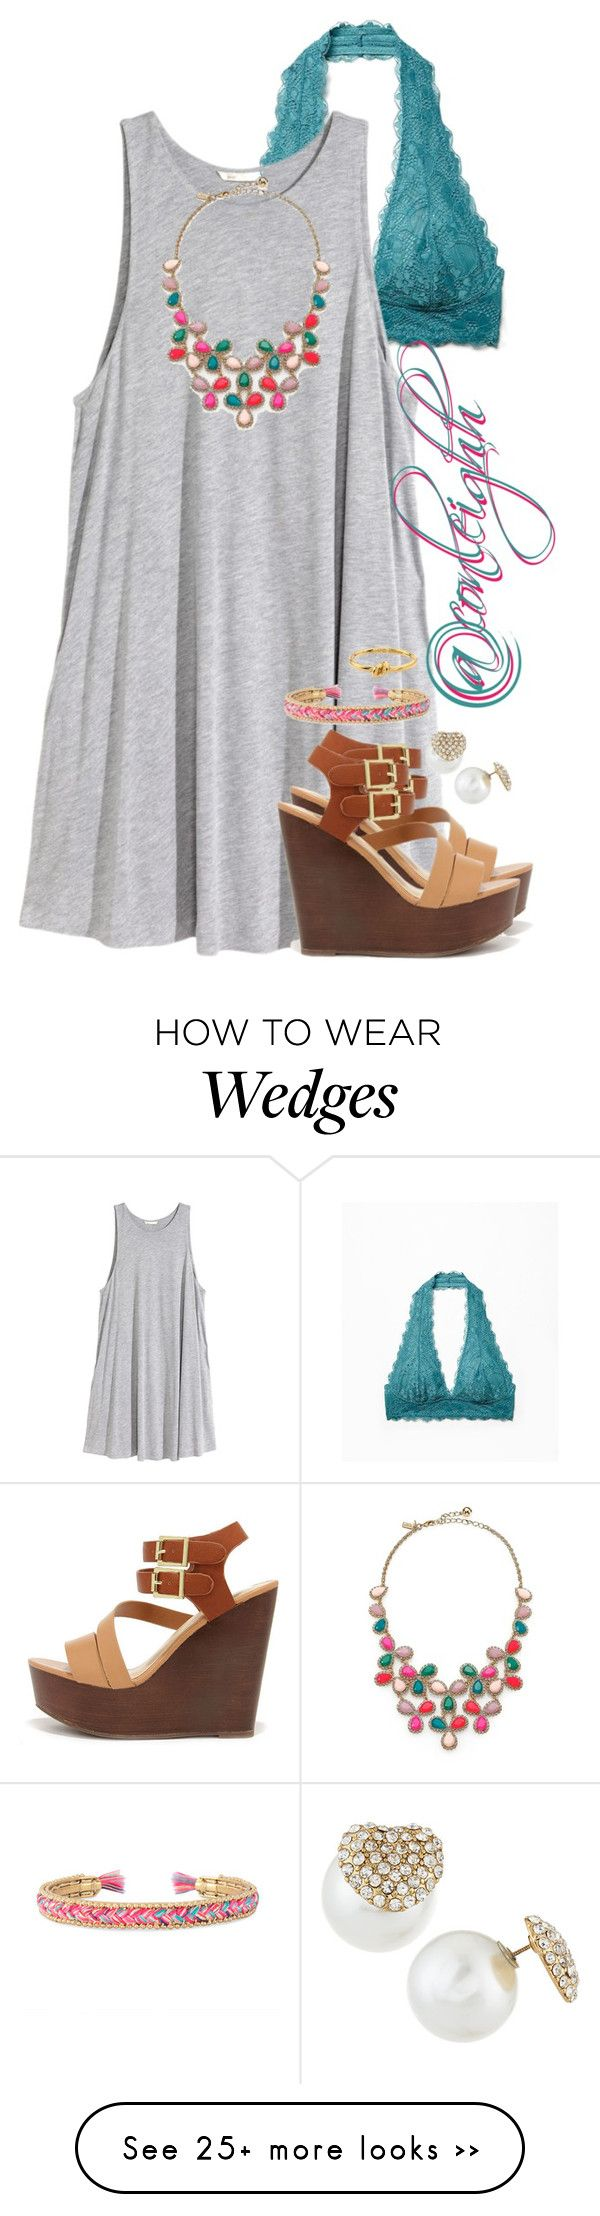 """""""Everyone go follow @conleighh(read d)"""" by anna-watson00 on Polyvore featuring Free People, H&M, Stella & Dot, Bamboo, Fragments and Kate Spade"""